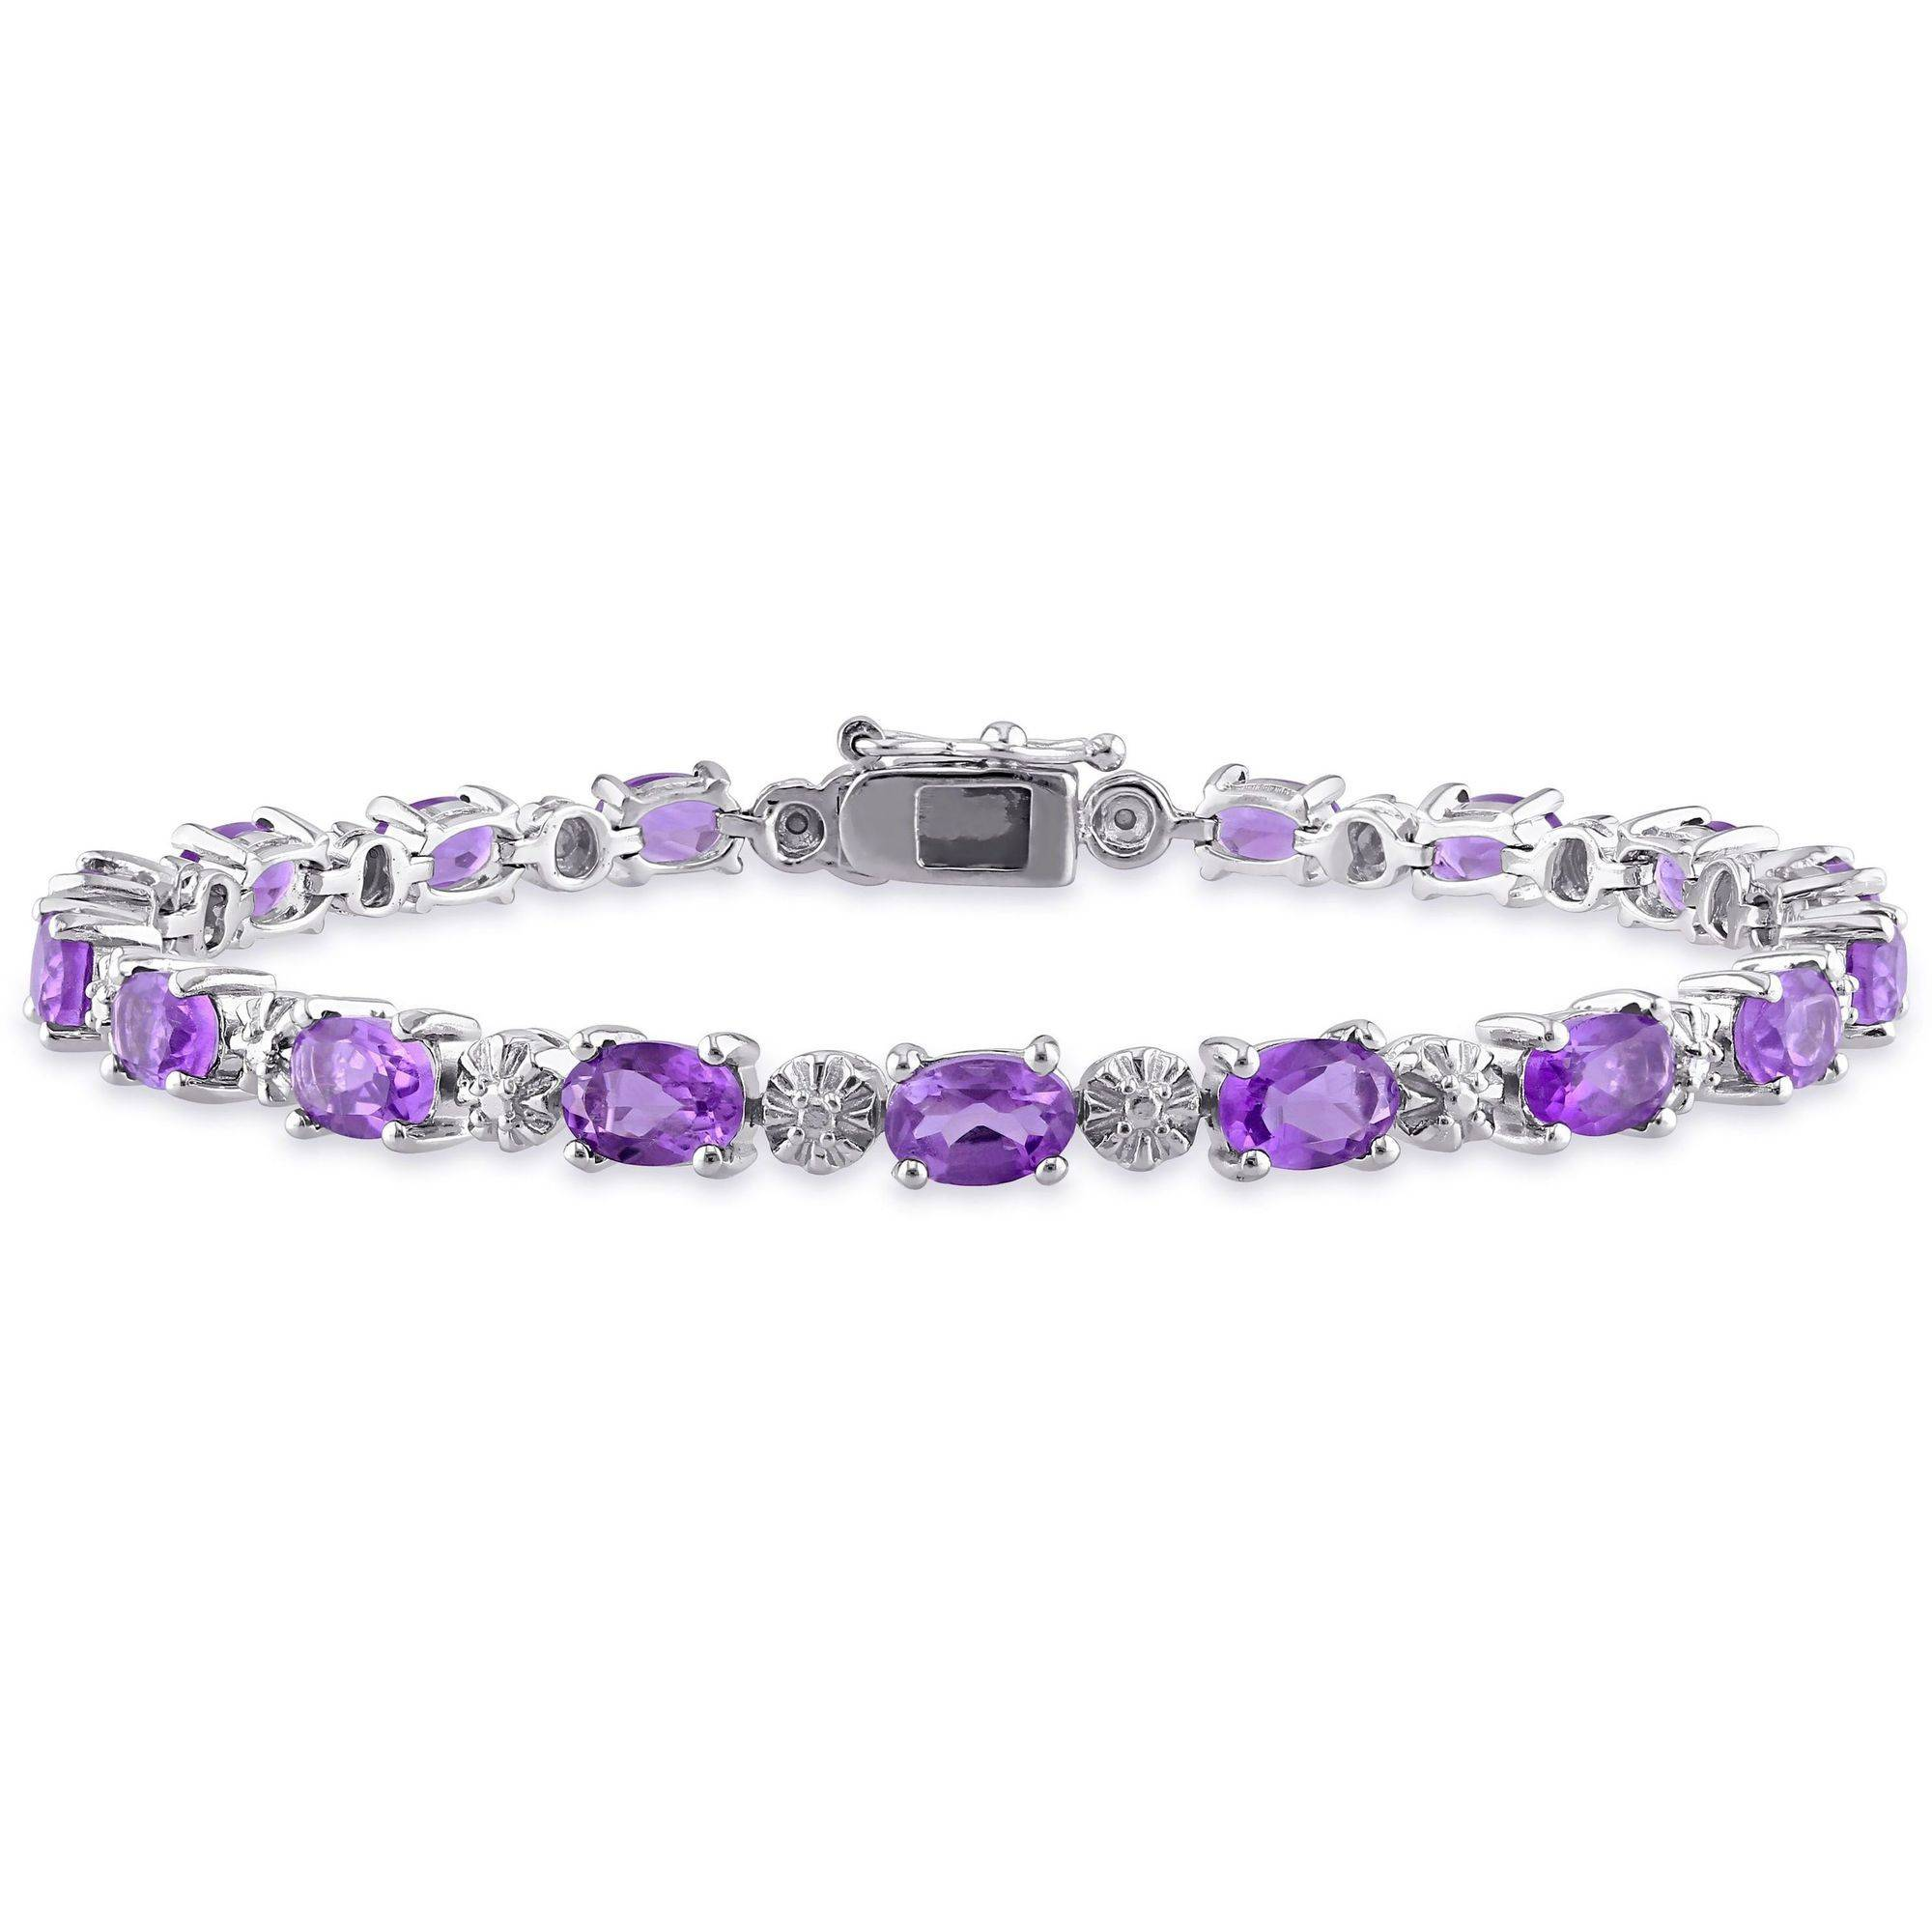 "Tangelo 7-1 5 Carat T.G.W. Amethyst and Diamond-Accent Sterling Silver Tennis Bracelet, 7"" by Tangelo"